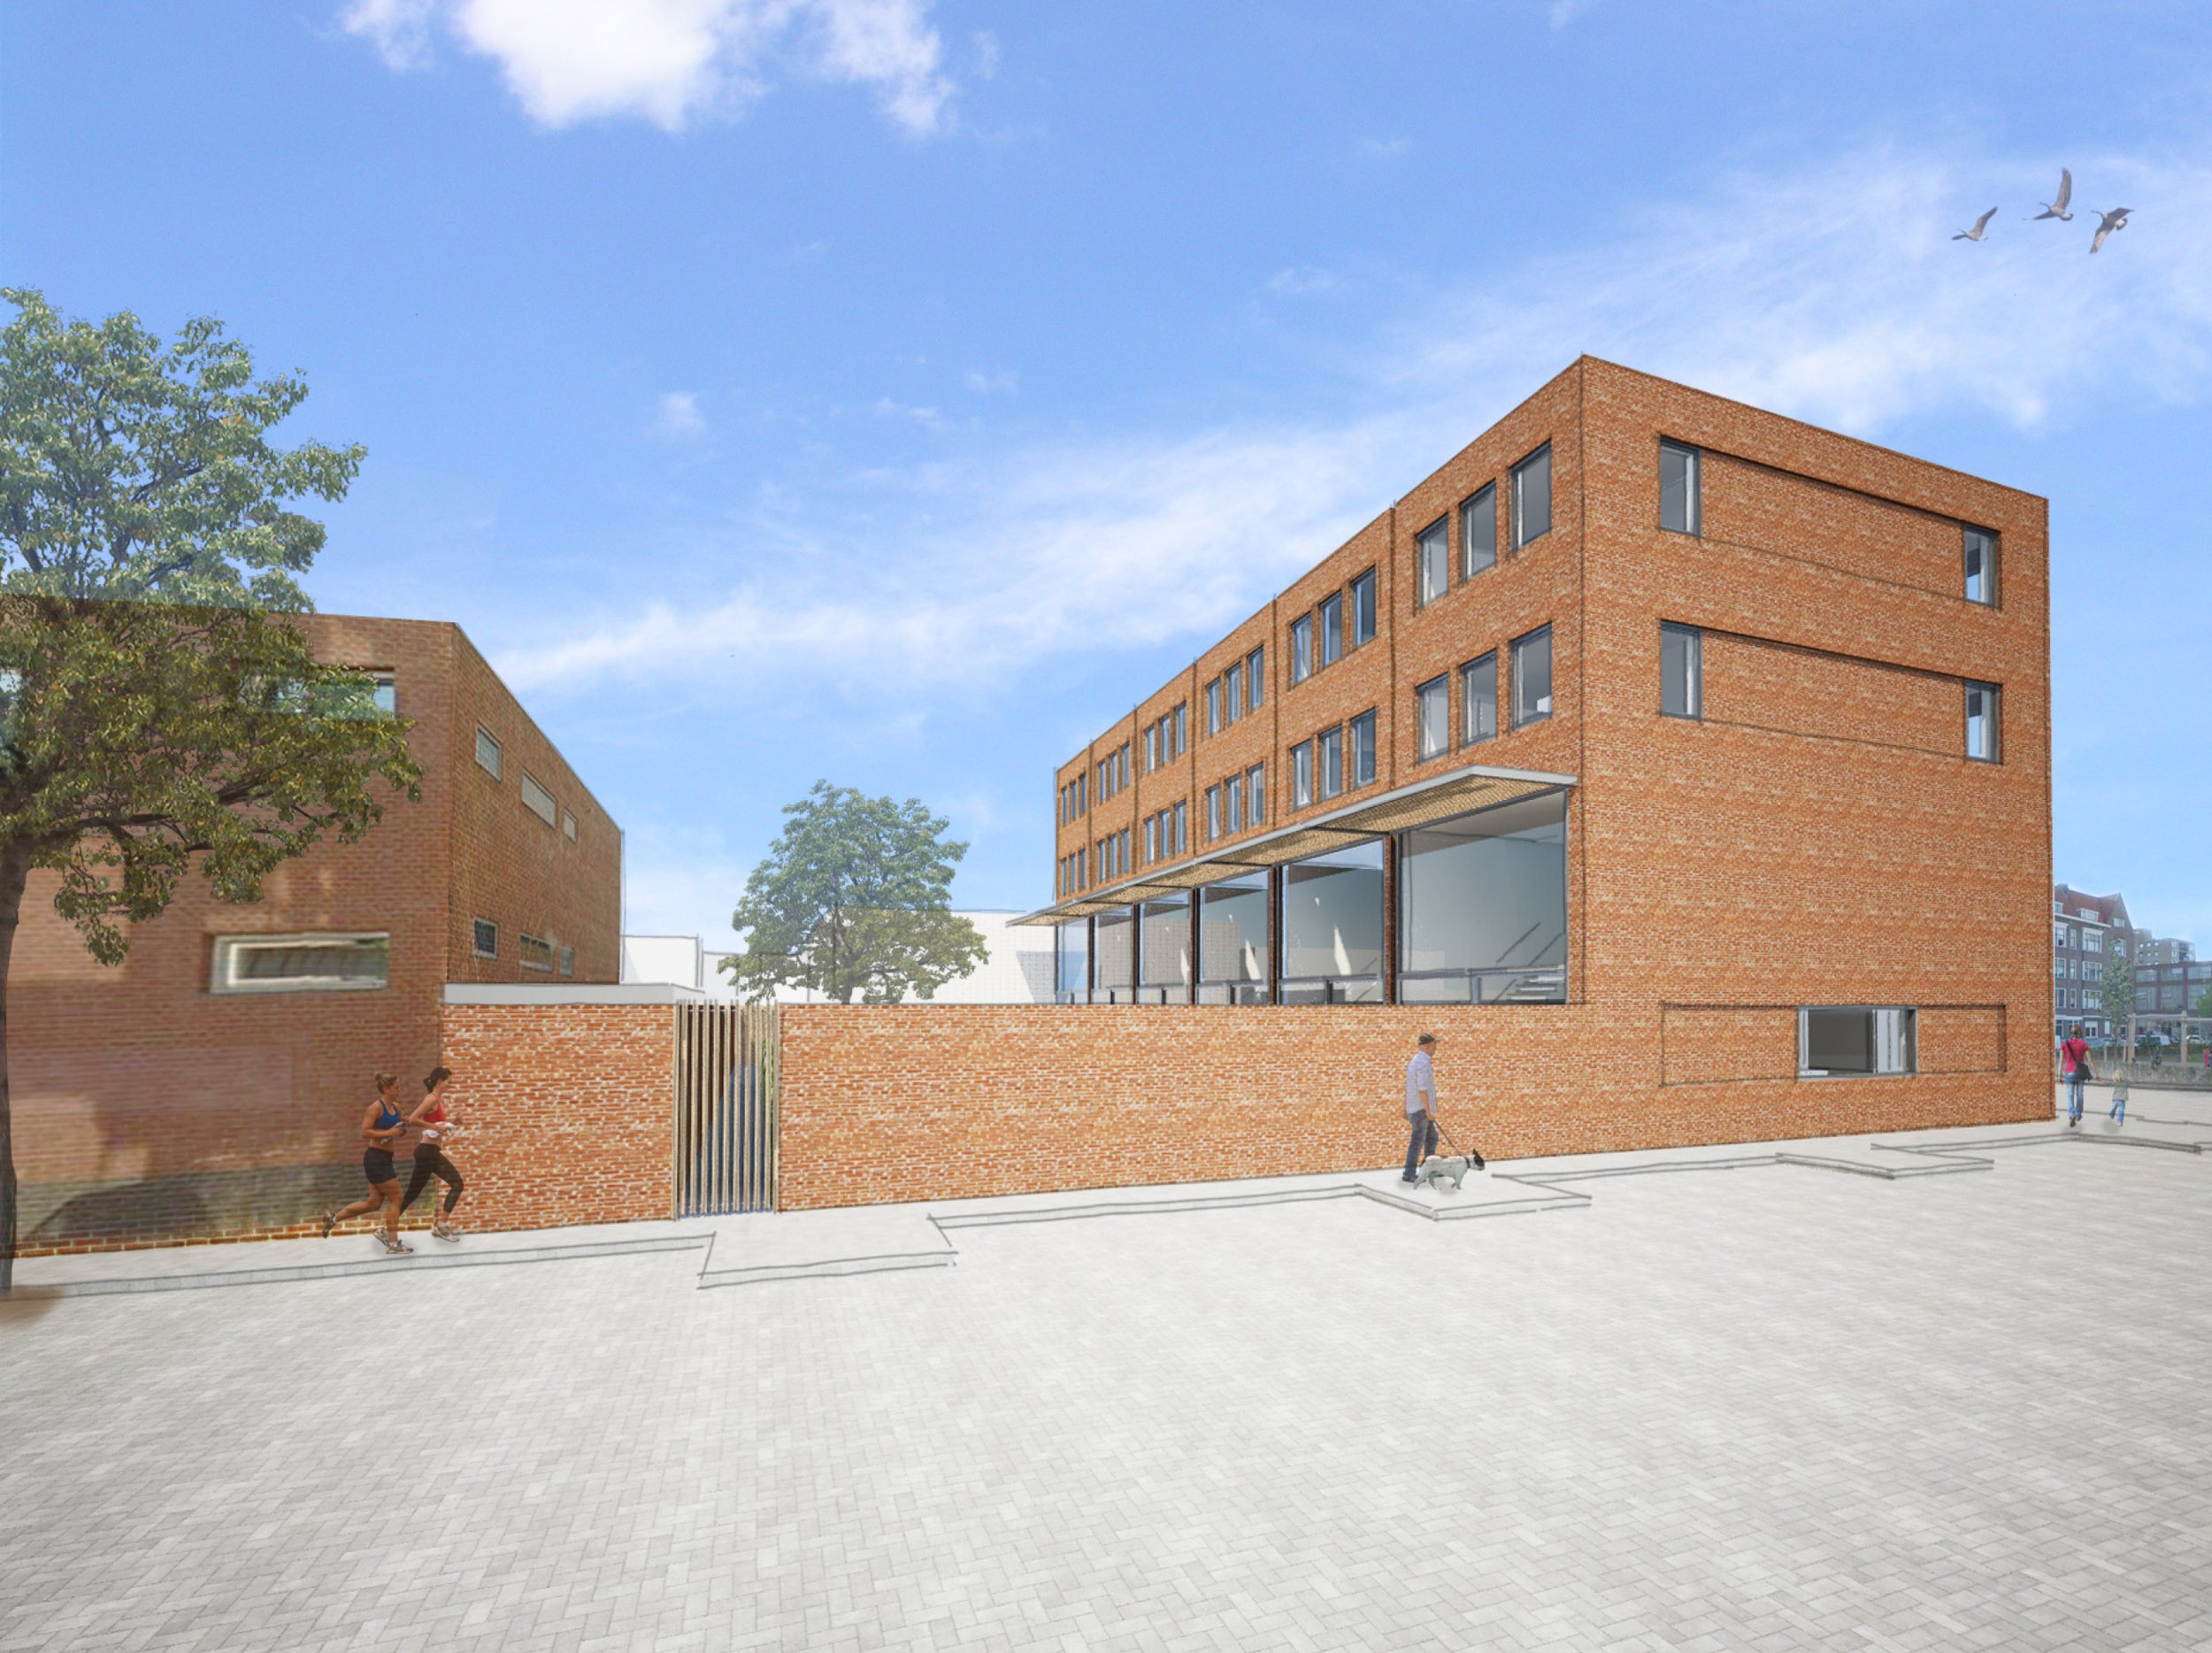 view from the side showing the brick wall separating the gardens form the street with a door leading to the storages in the gardens. The void on the first floor is represented by the double high glass facade on the back.